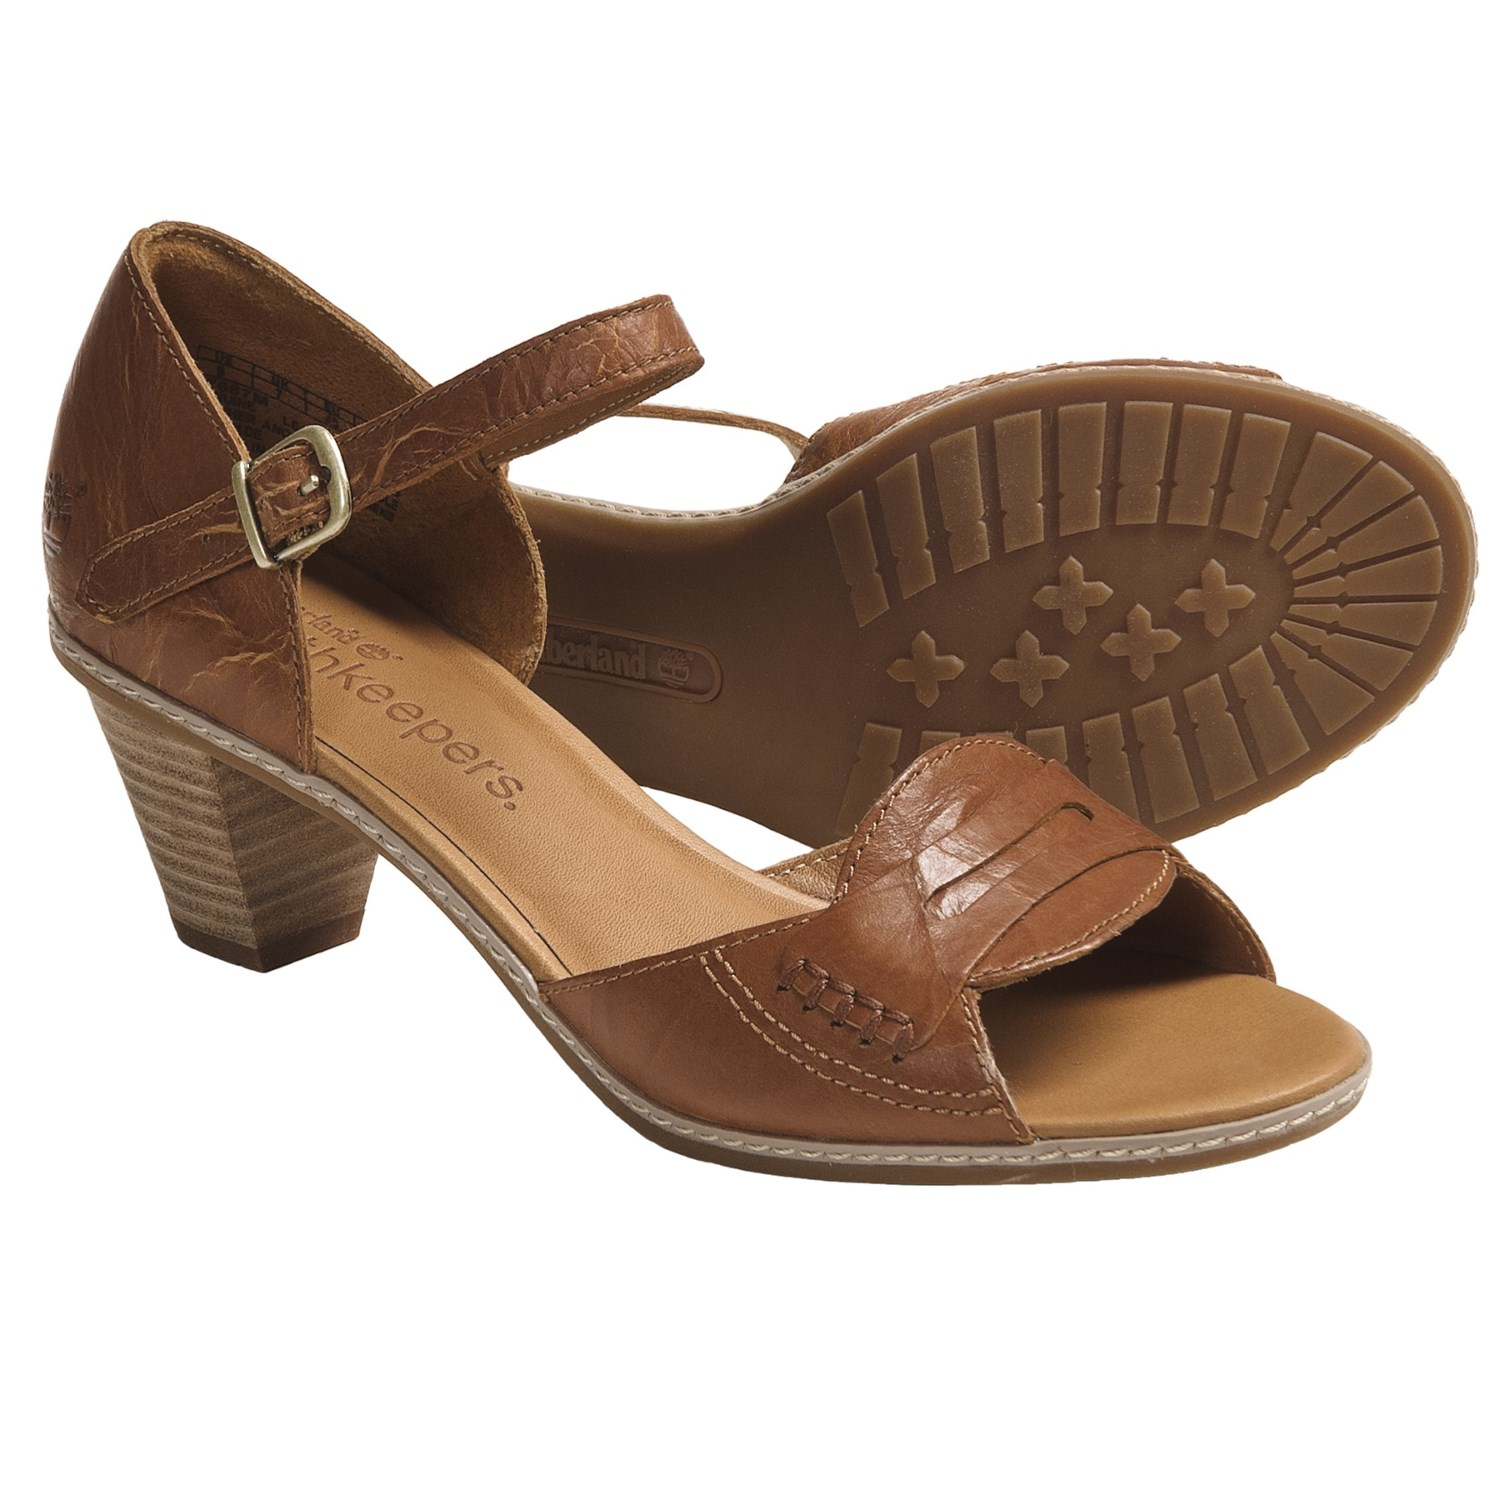 Elegant Timberland Womens Earthkeepers Danforth Mule Sandals